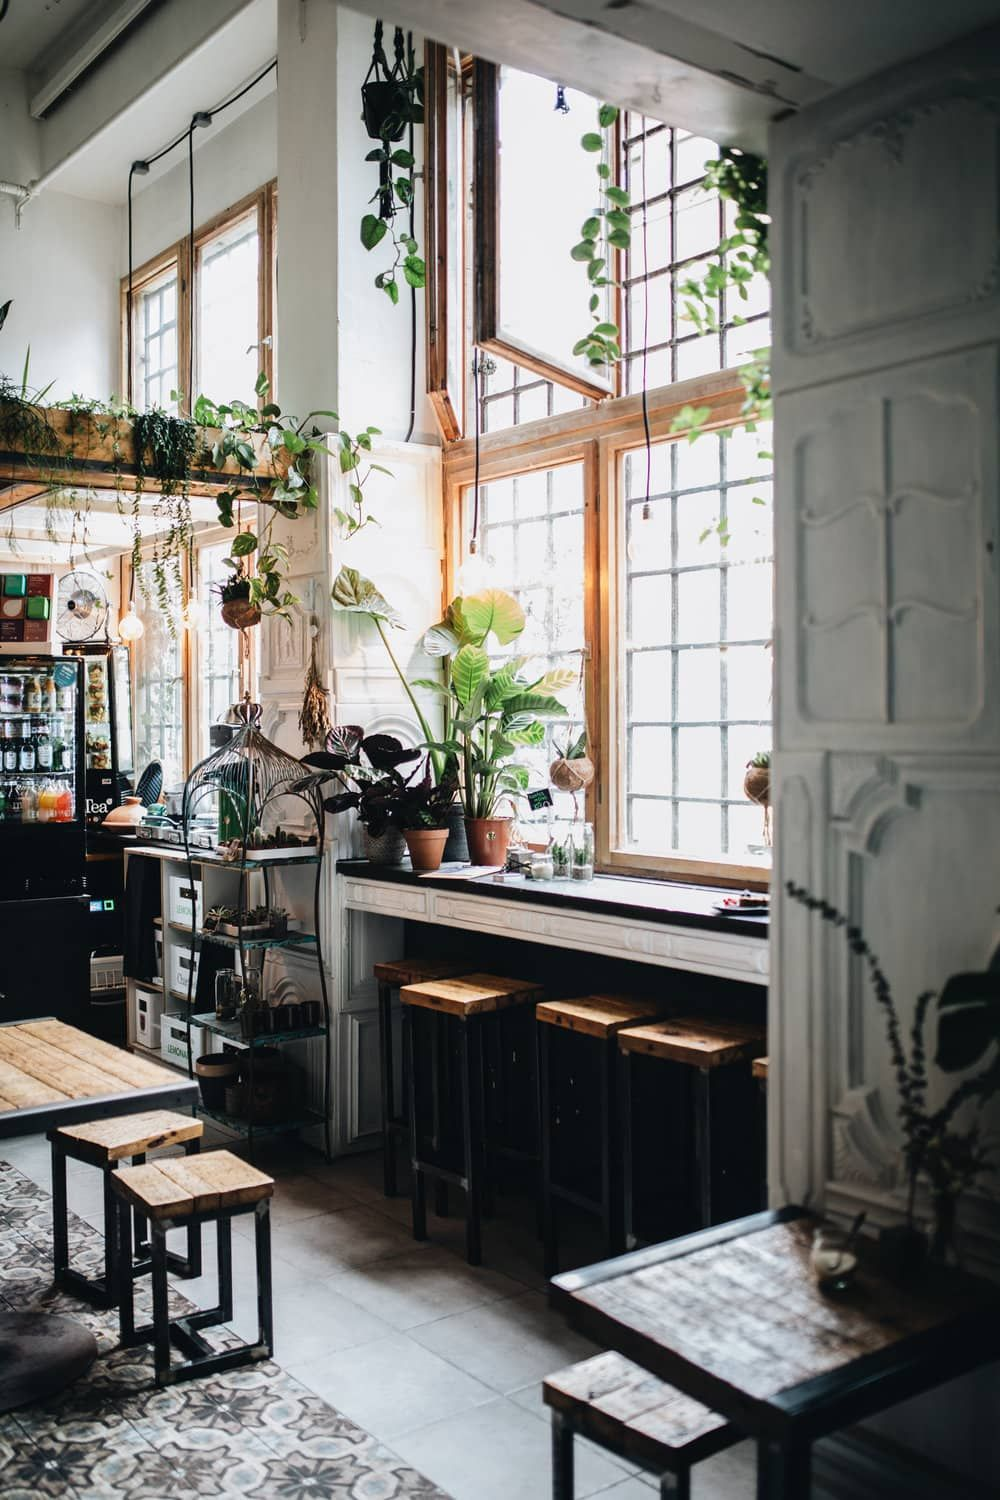 Interior Design Berlin The Greens Coffee And Plants Cafe Interior, Berlin – Home Decor – Design. / Visual. | Cafe Interior, Cosy Cafe, Dark Interiors